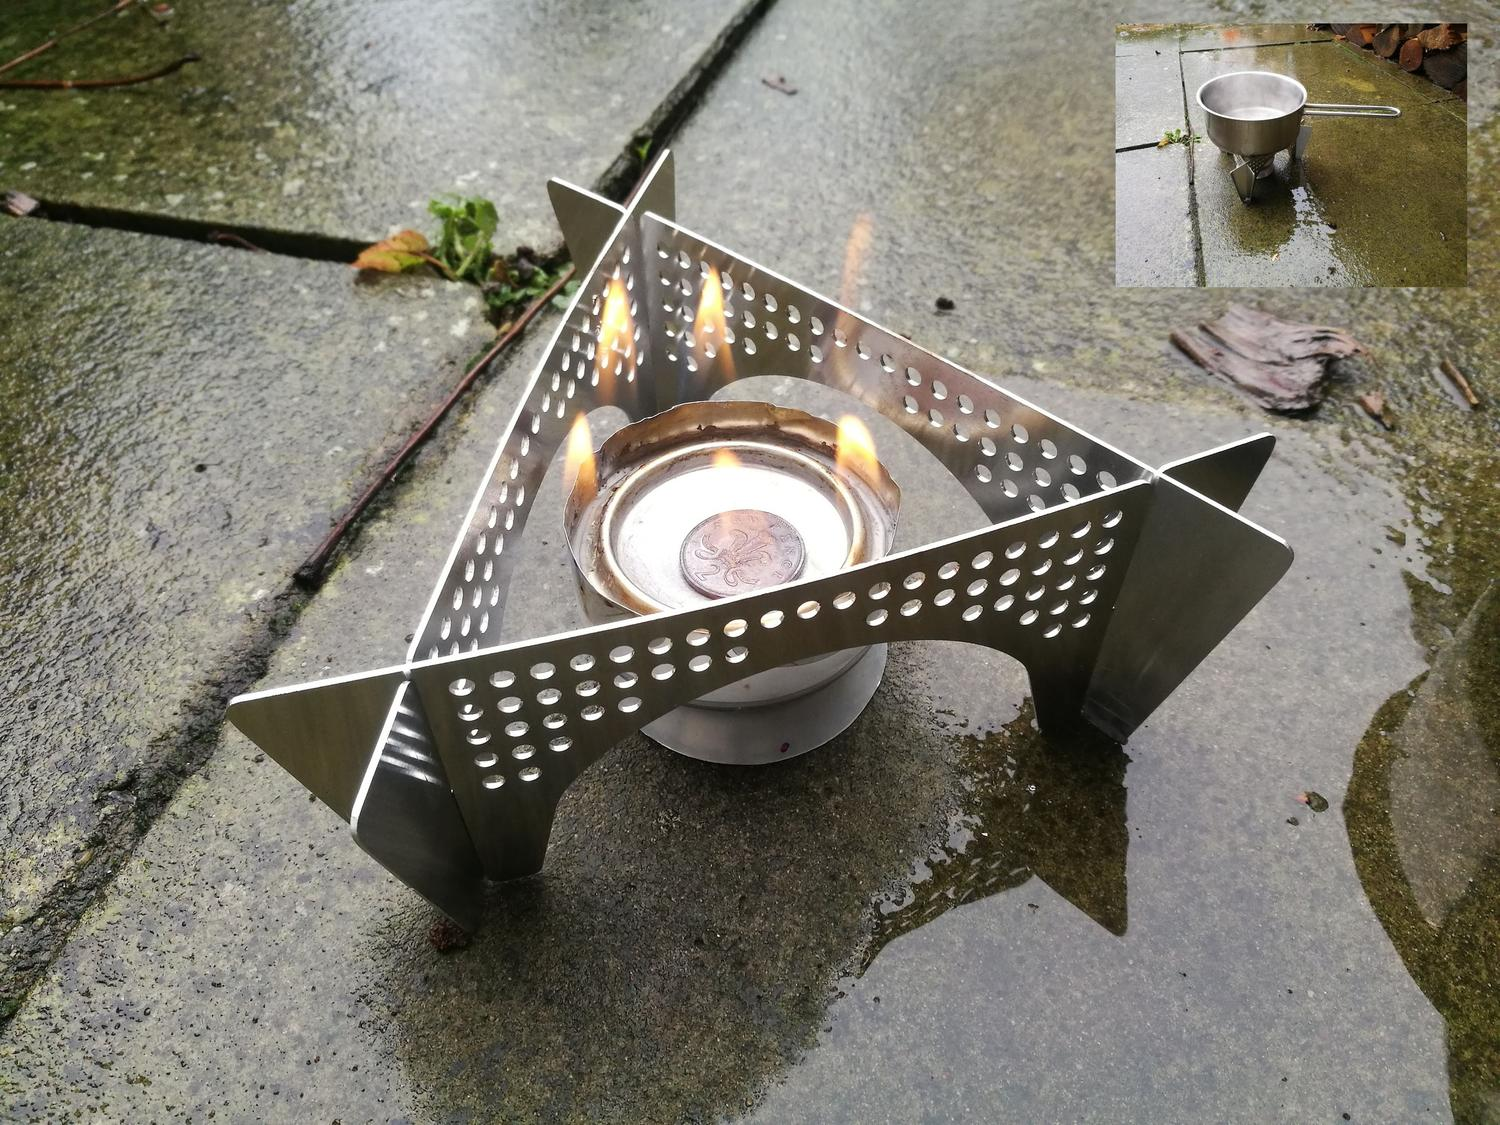 Laser Cut Stove Support Stand Base And Wind Shield For Outdoor Camping Plasma Cut DXF File